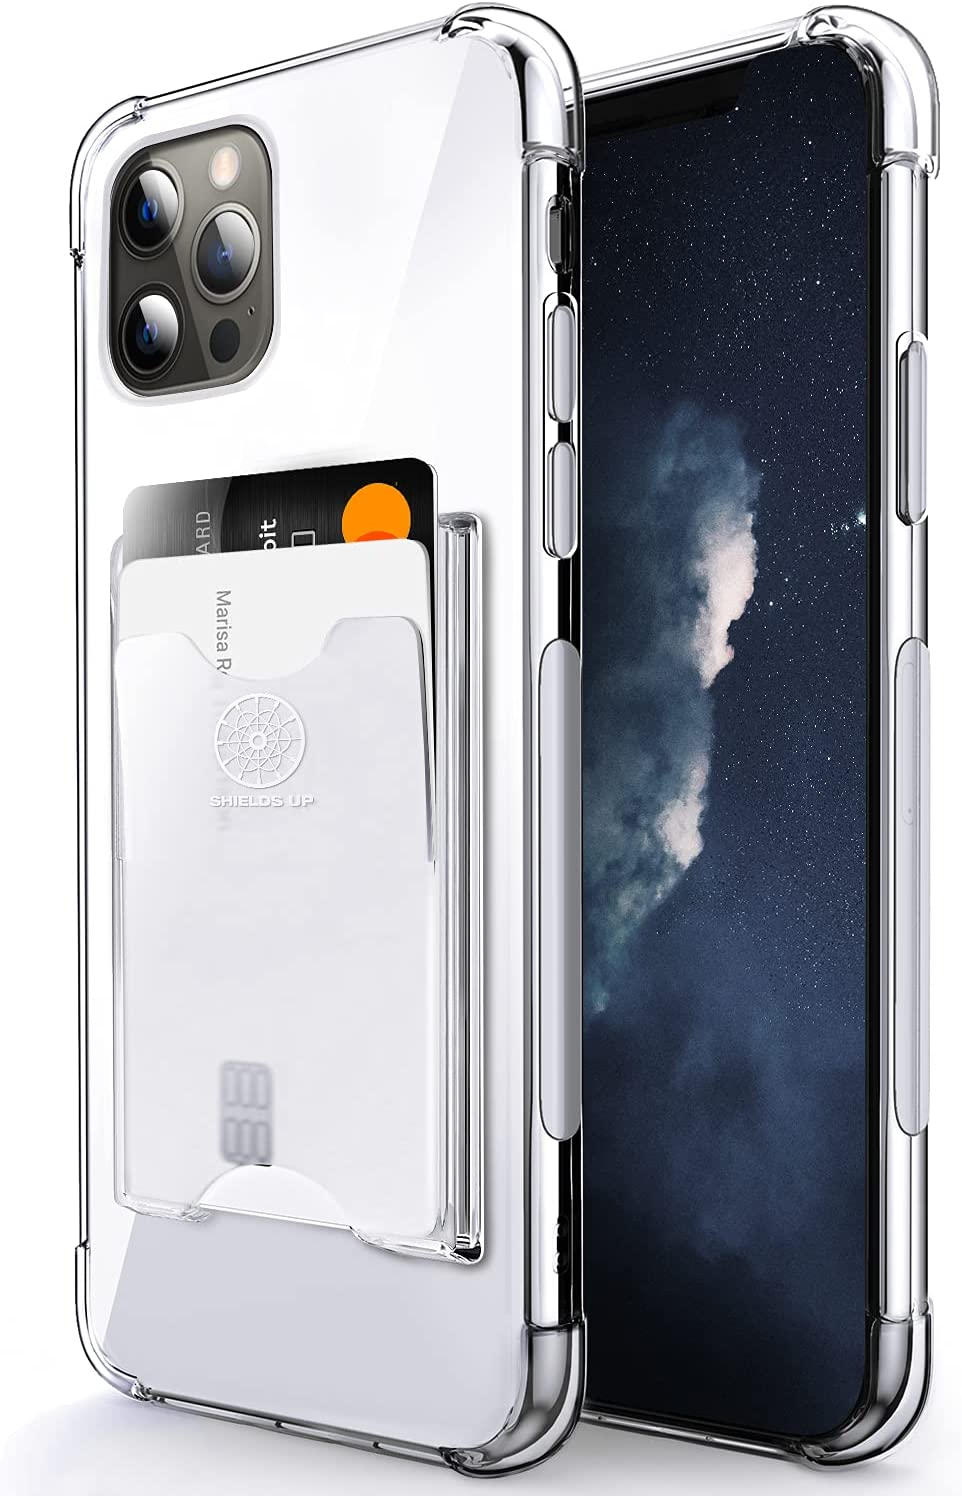 Shields Up Designed for iPhone 12 Case, iPhone 12 Pro Case, Minimalist Wallet Case with Card Holder, Slim Protective Soft TPU Shockproof Cover for Apple iPhone 12/12 Pro (6.1 inch) - Clear